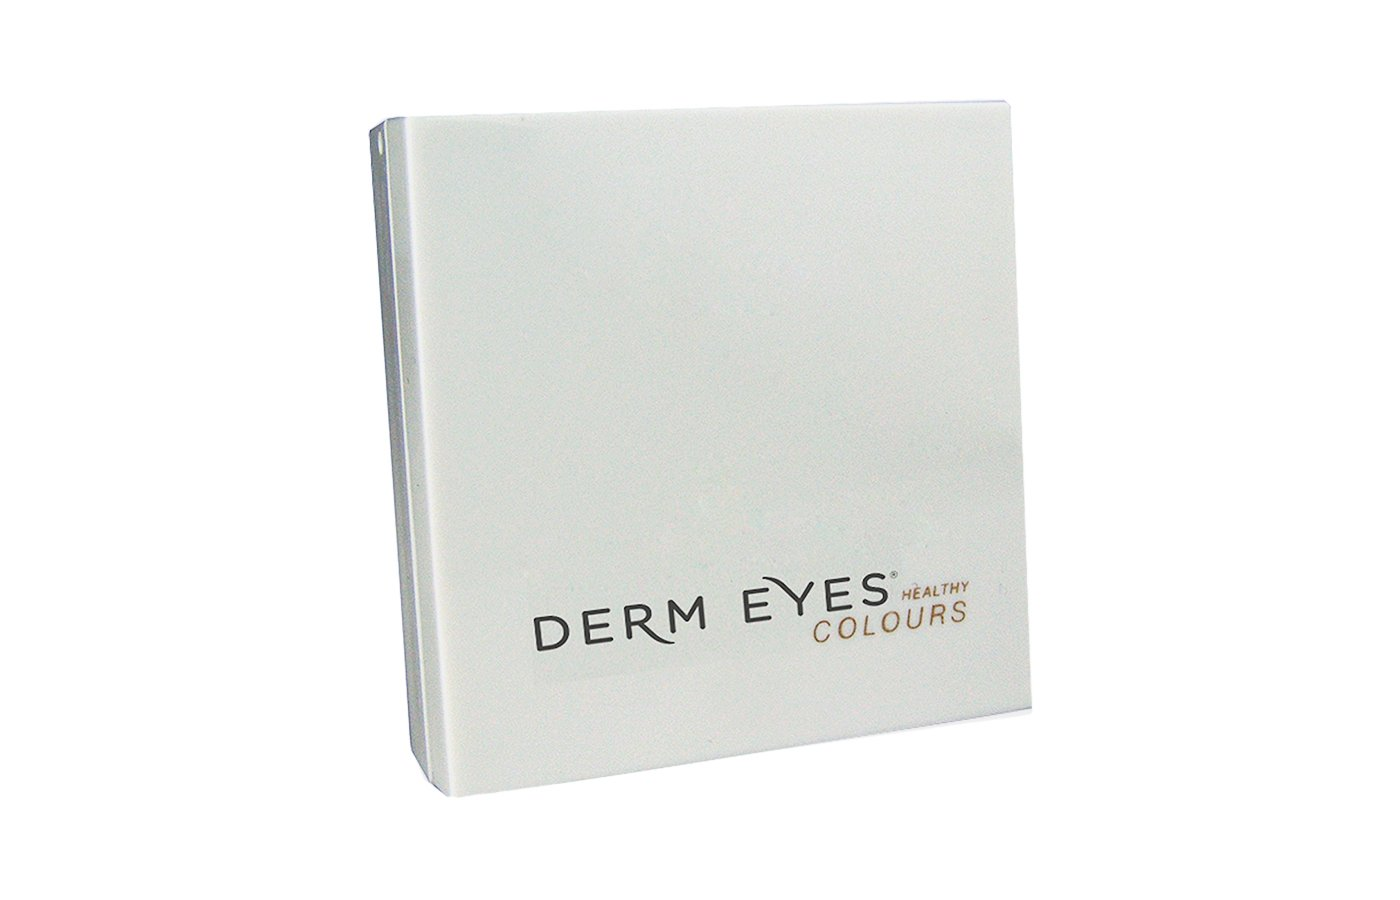 DERMEYES HEALTHY SHADOWS N2 PALM